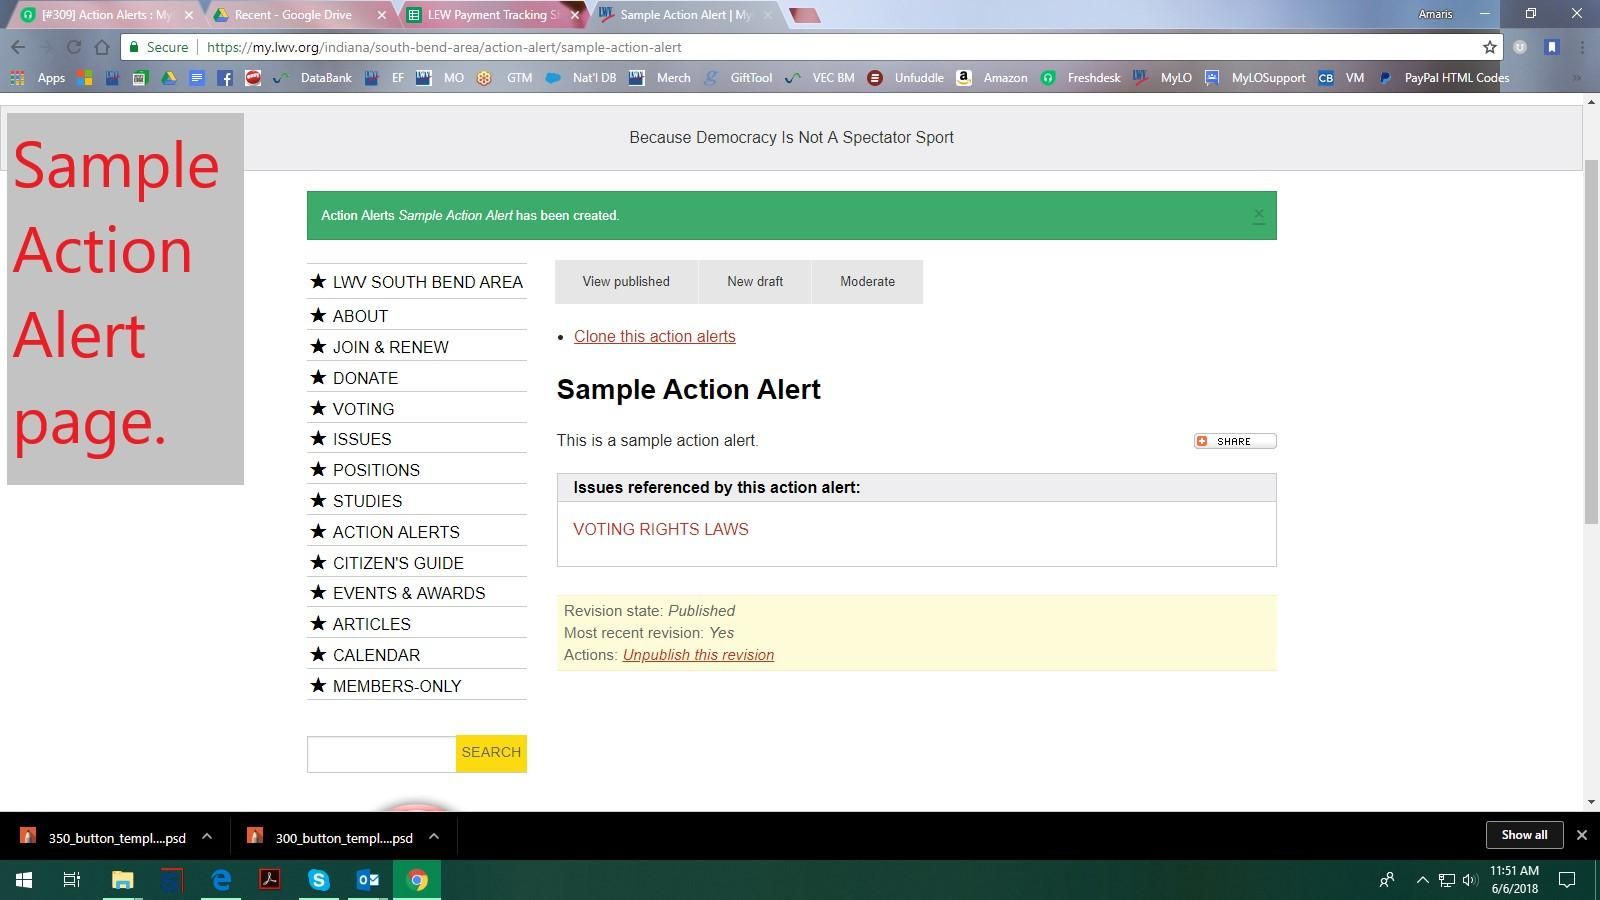 Create Action Alert - Sample Action Alert created